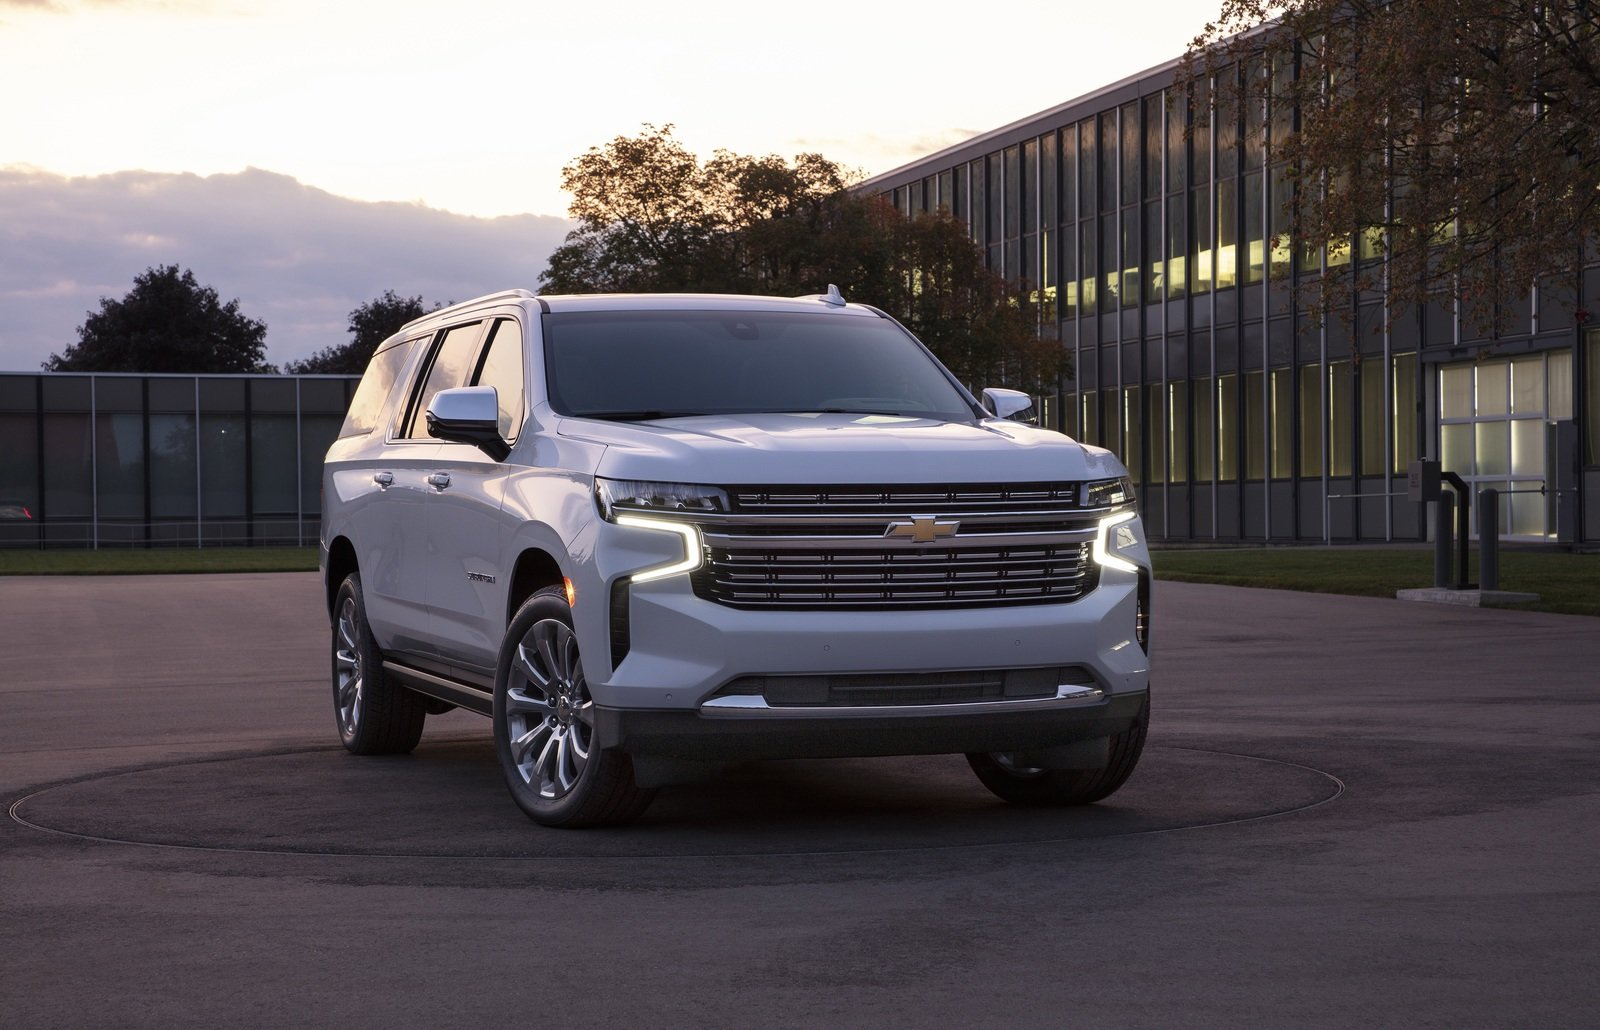 2021 Chevy Suburban 2021 Chevrolet Equinox Base Model, Curb Weight, Cargo Space